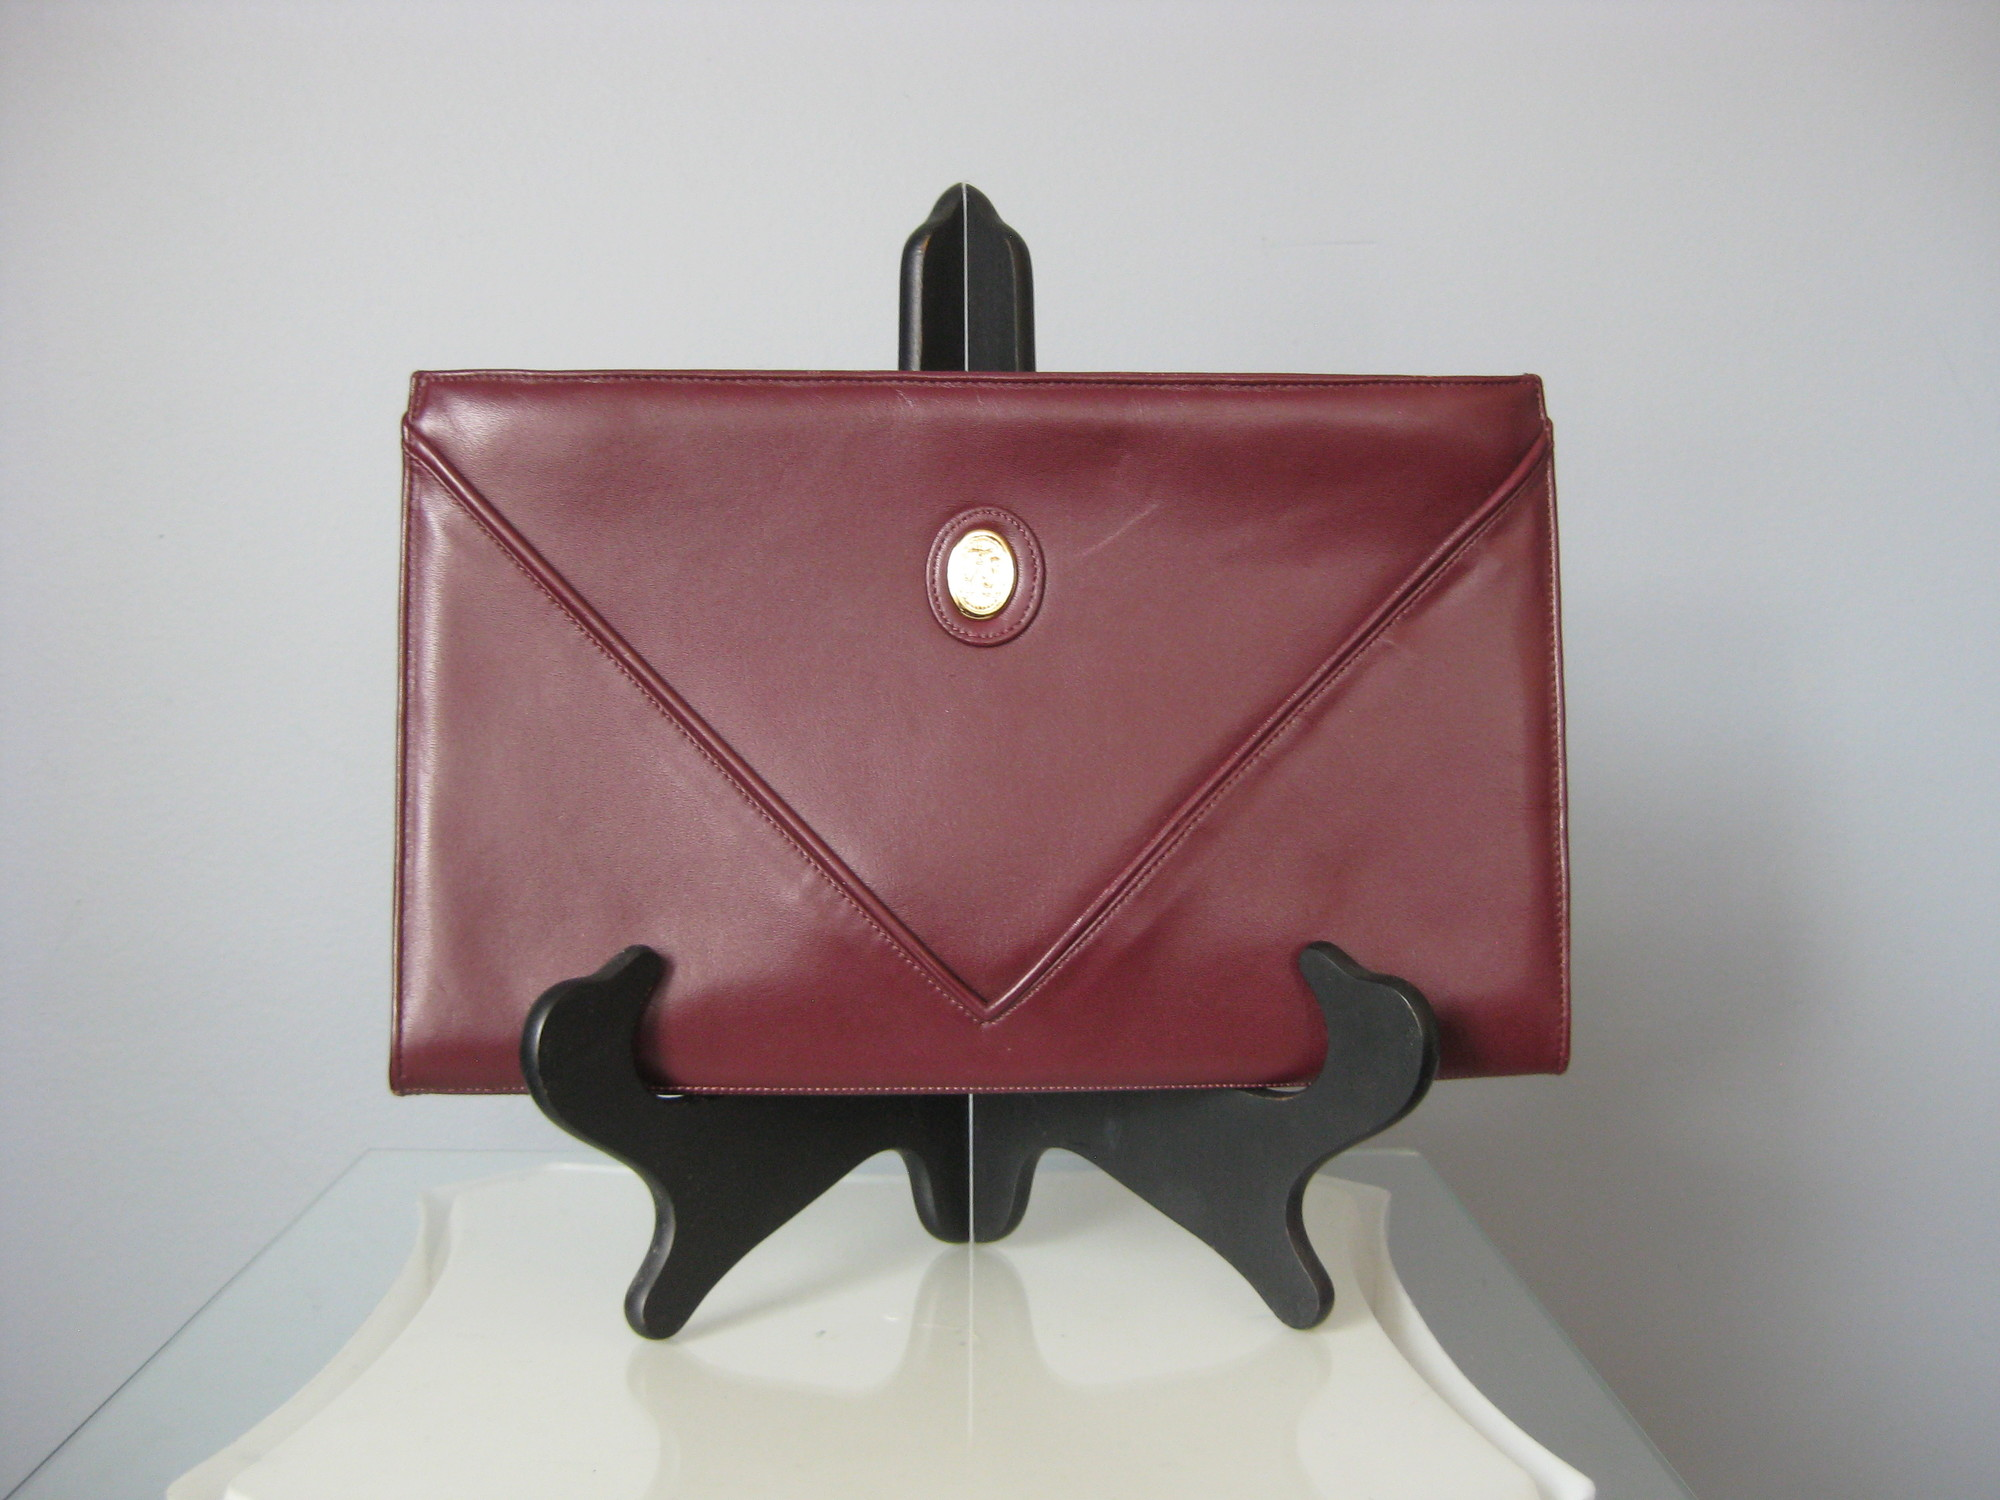 This is an understated but rich looking slim clutch made of fine burgundy leather by FS Originals   It has two compartments and opens at the top with a zipper.   Inside it has one zippered pocket.<br /> Made in Korea<br /> Excellent condition<br /> <br /> I love the large scale of this clutch.  Makes a statement and is actually roomy enough to be practical for a day look.<br /> <br /> The bag measures 11.75in by 7.25in and is about 1in deep without anything in it.<br /> Thank you for looking.<br /> <br /> #40965